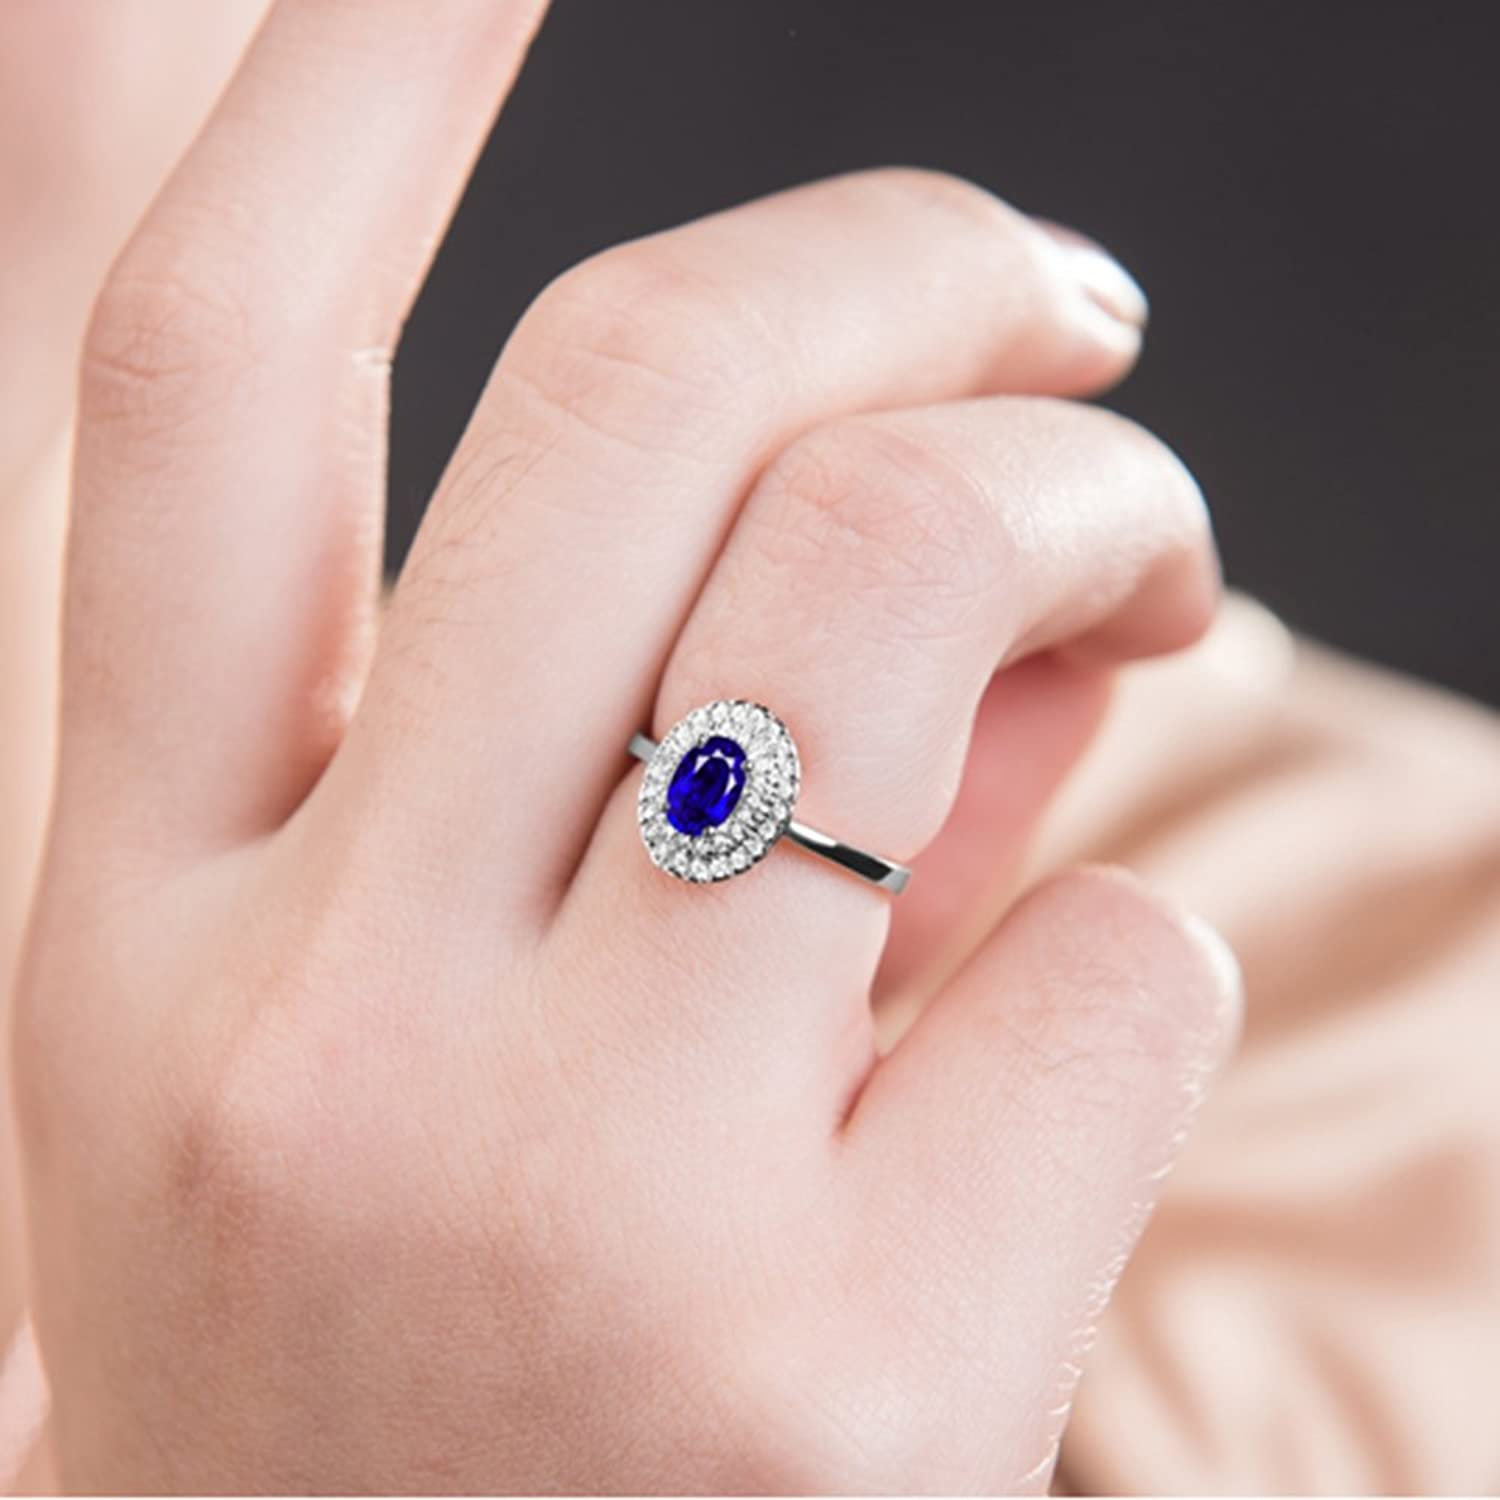 Amazon.com: Kardy Fashion 14K White Gold Oval Sapphire & White ...